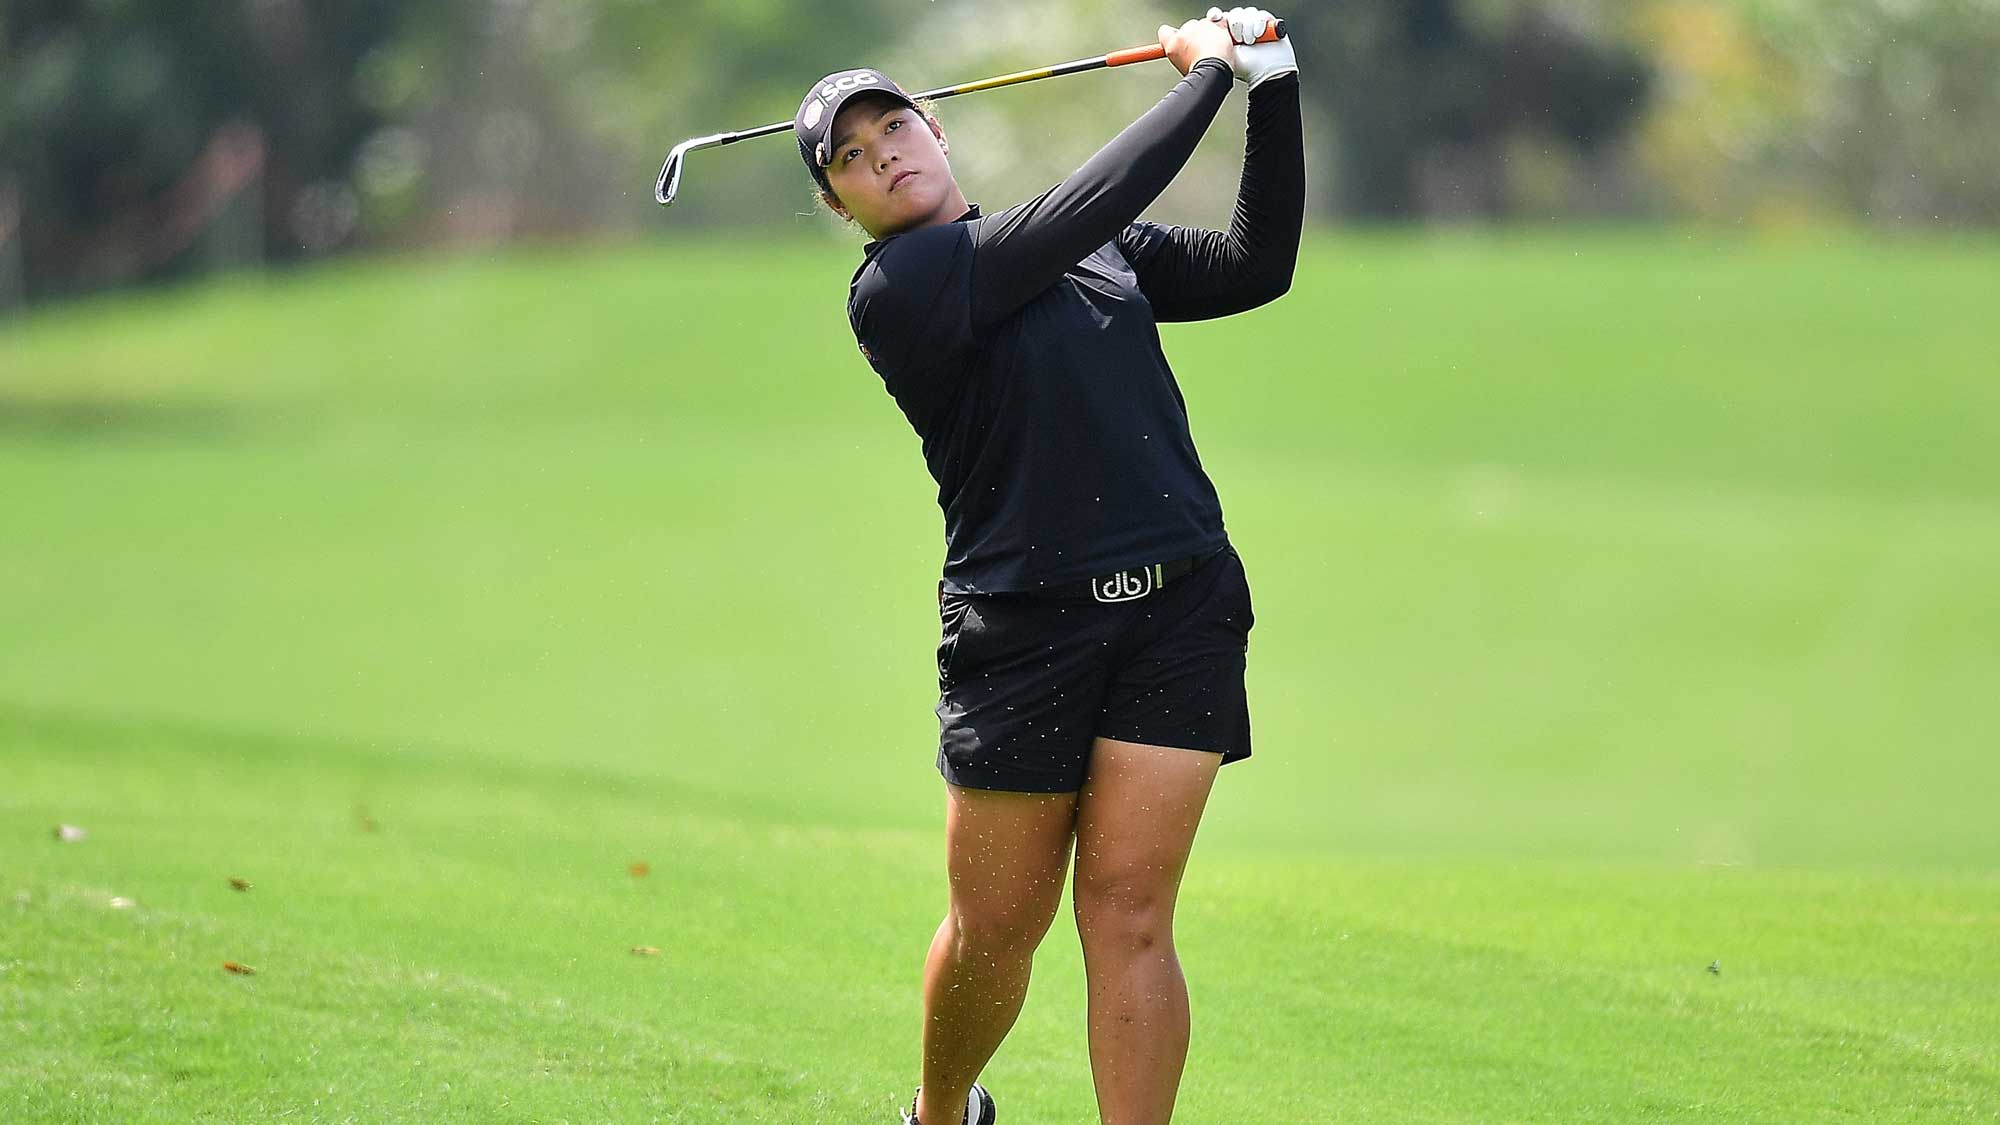 Ariya Jutanugarn of Thailand plays the shot during the Honda LPGA Thailand